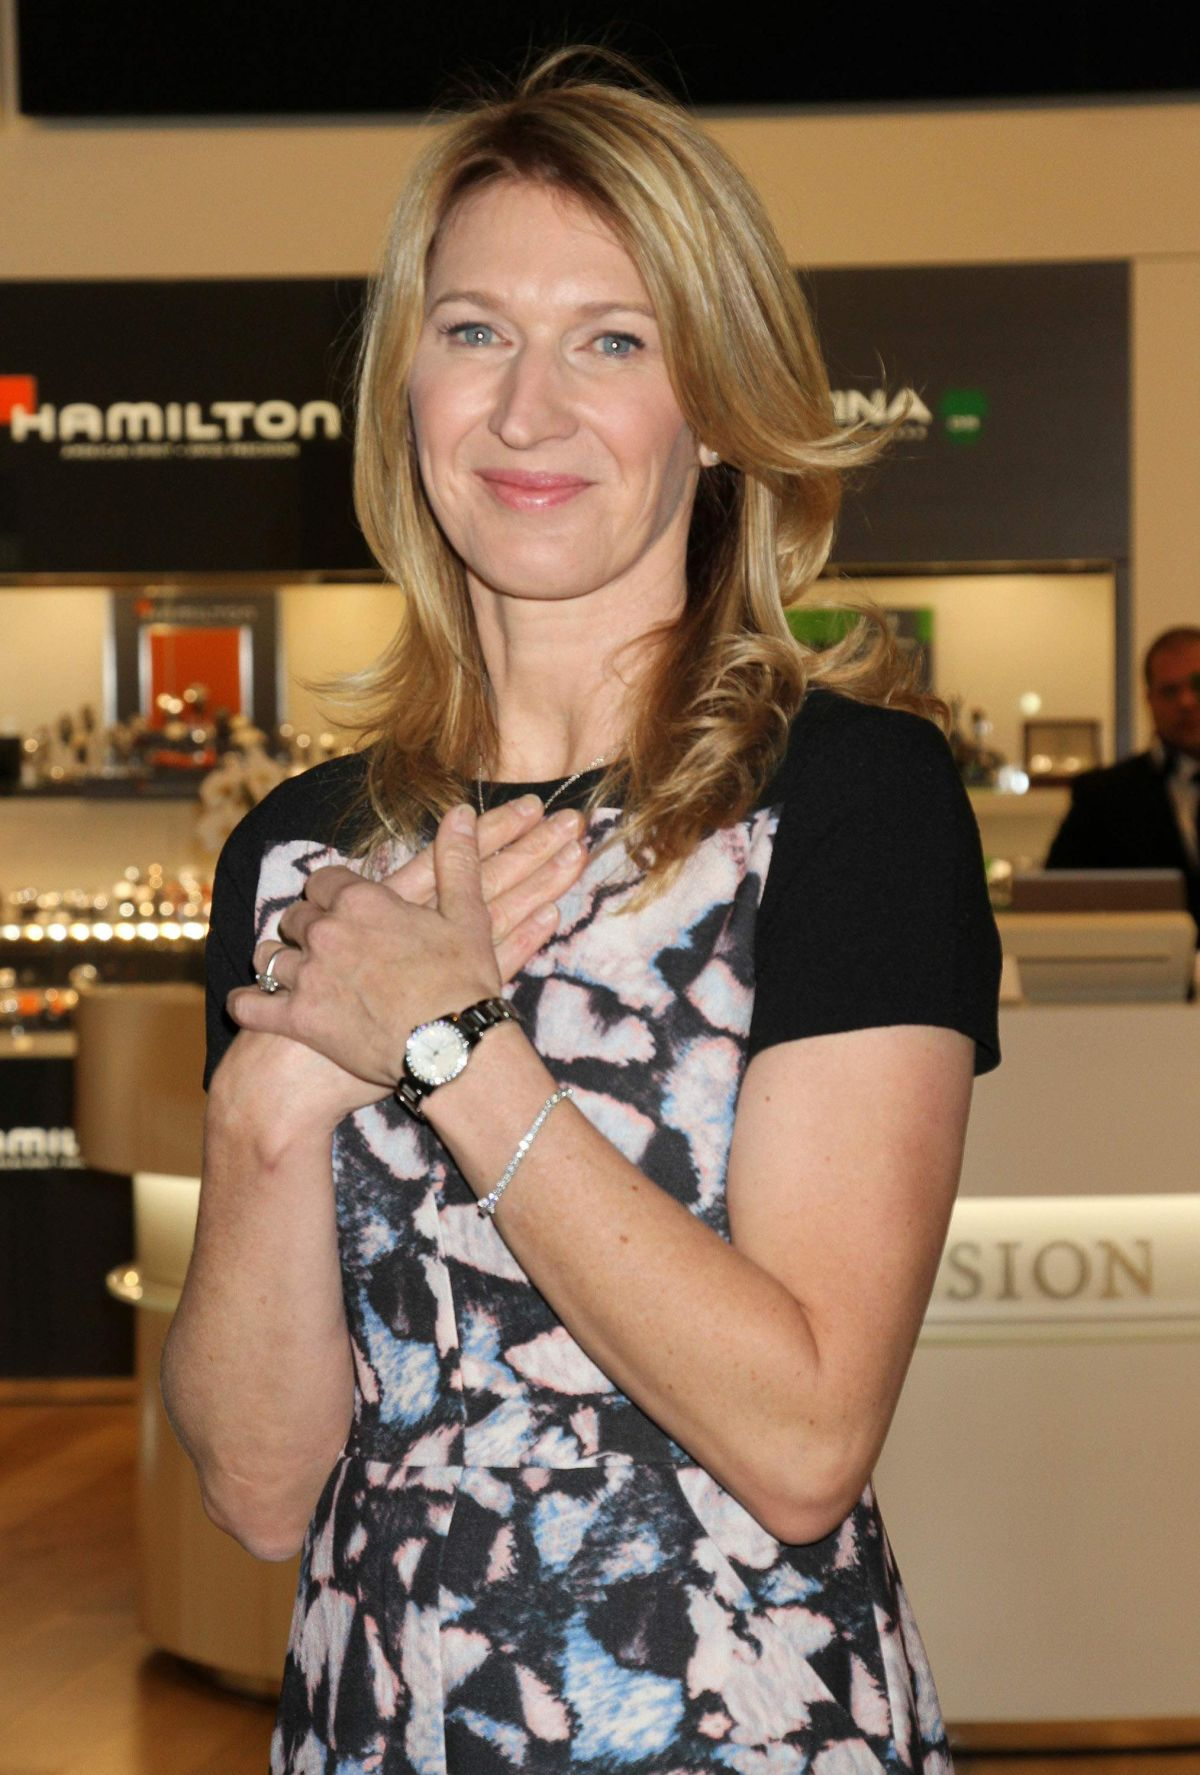 Images Steffi Graf Complete steffi graf at hour passion boutique opening in las vegas